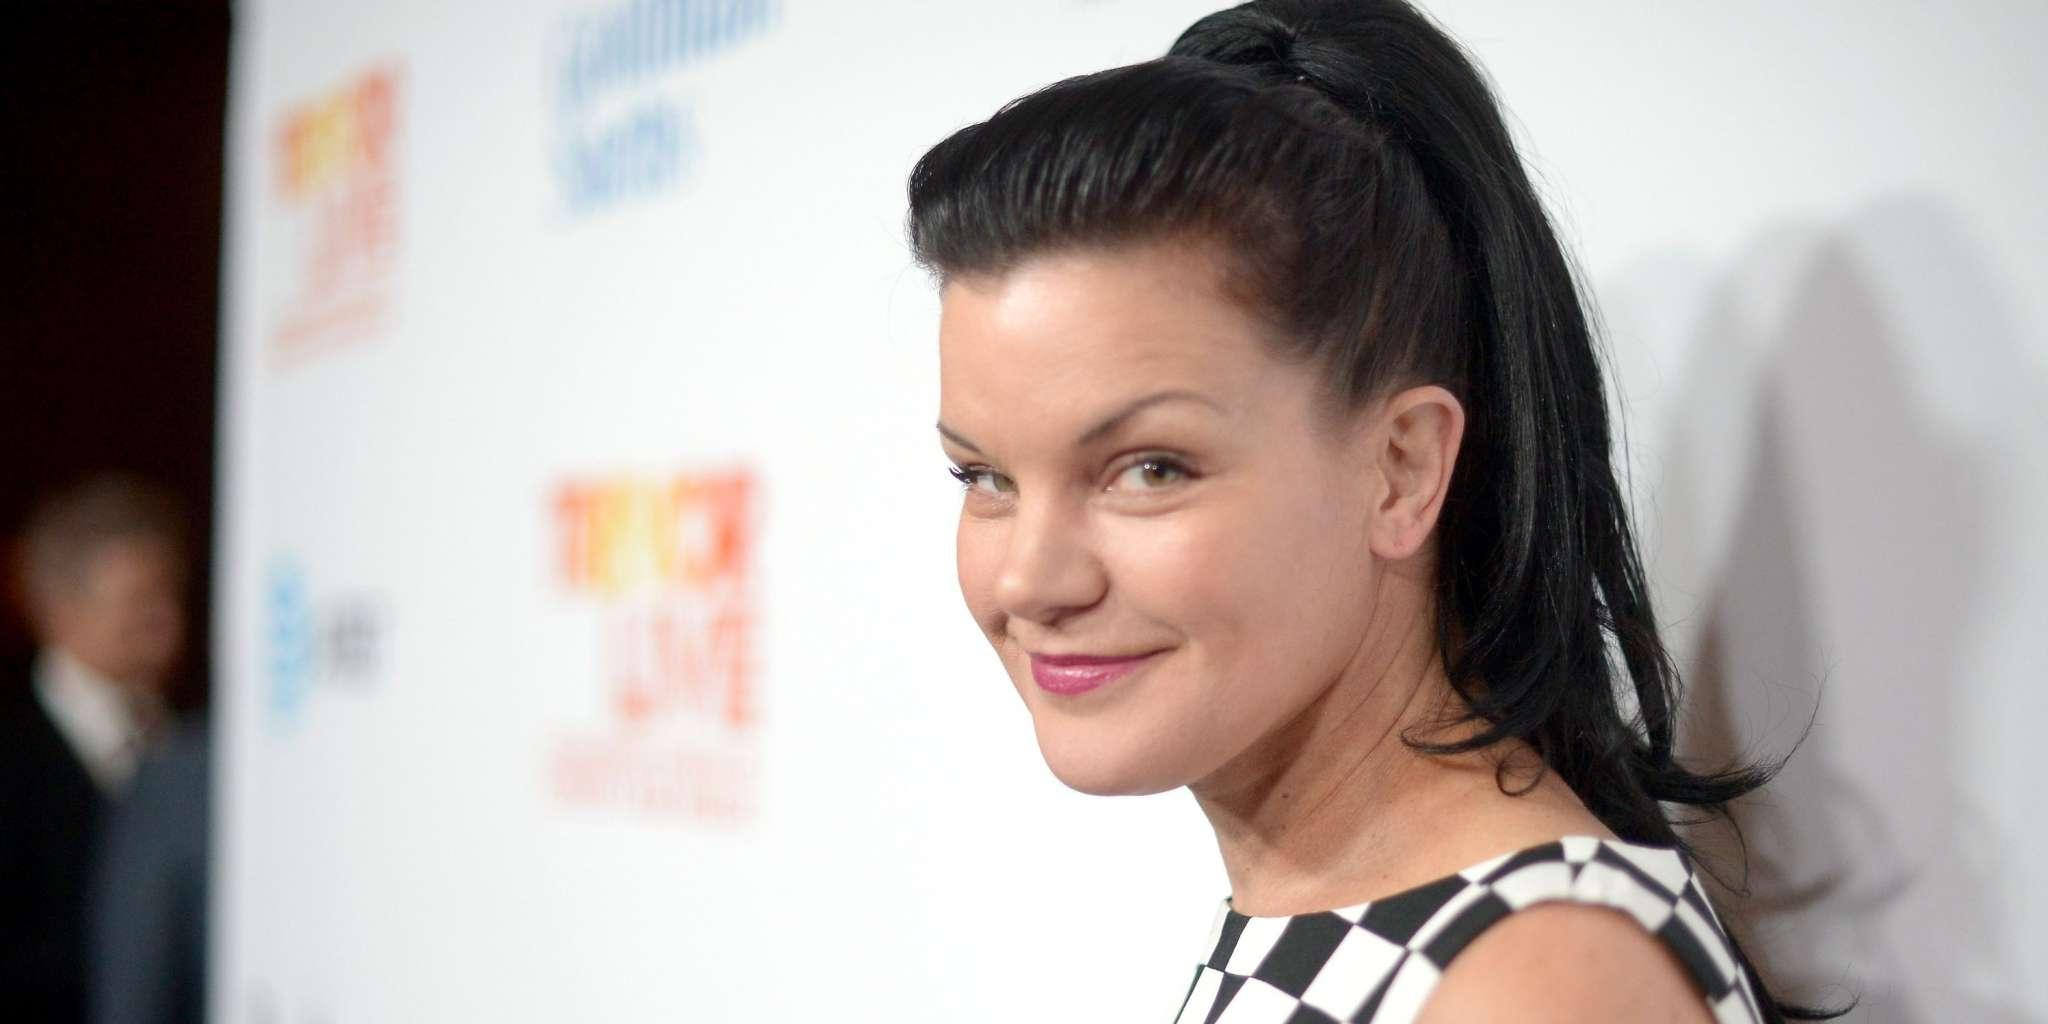 Pauley Perrette Is Back On CBS After Her NCIS Exit - Stars In New Sitcom Titled 'Broke!'